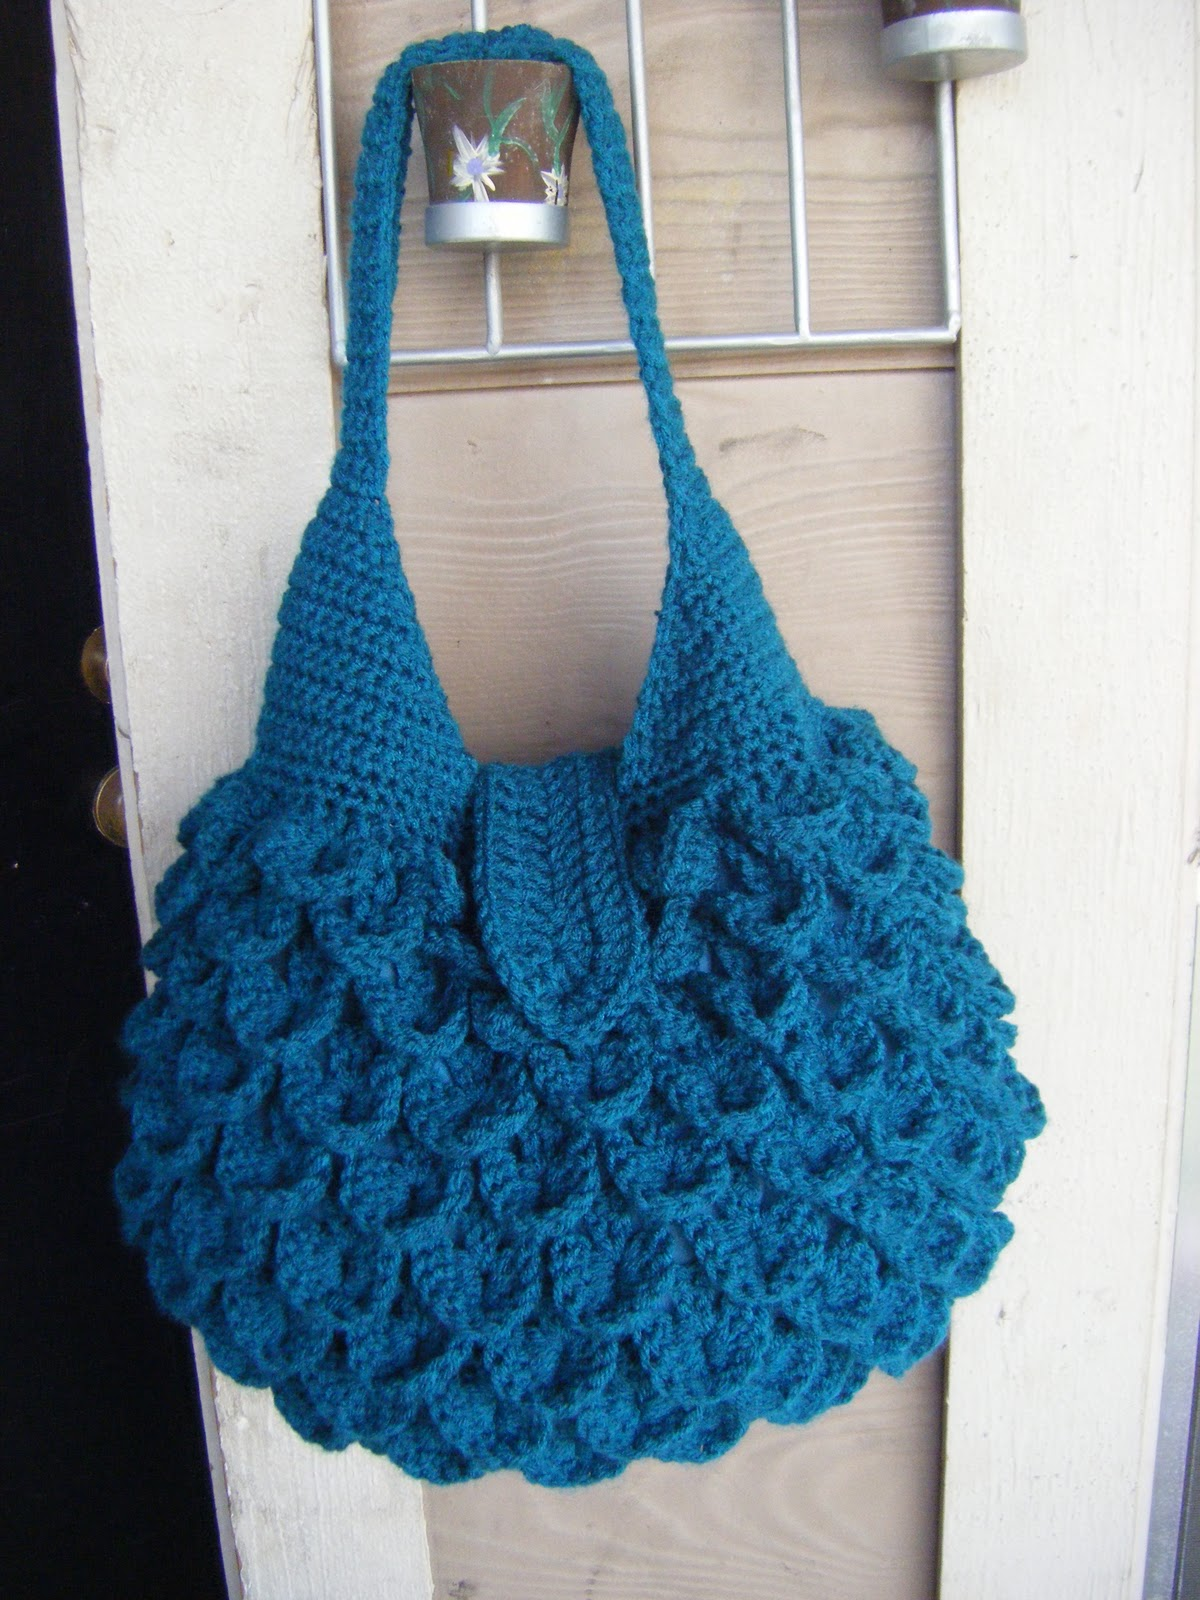 Crochet Patterns For Purses : Best Patterns: Crocodile Crochet Bag PATTERN